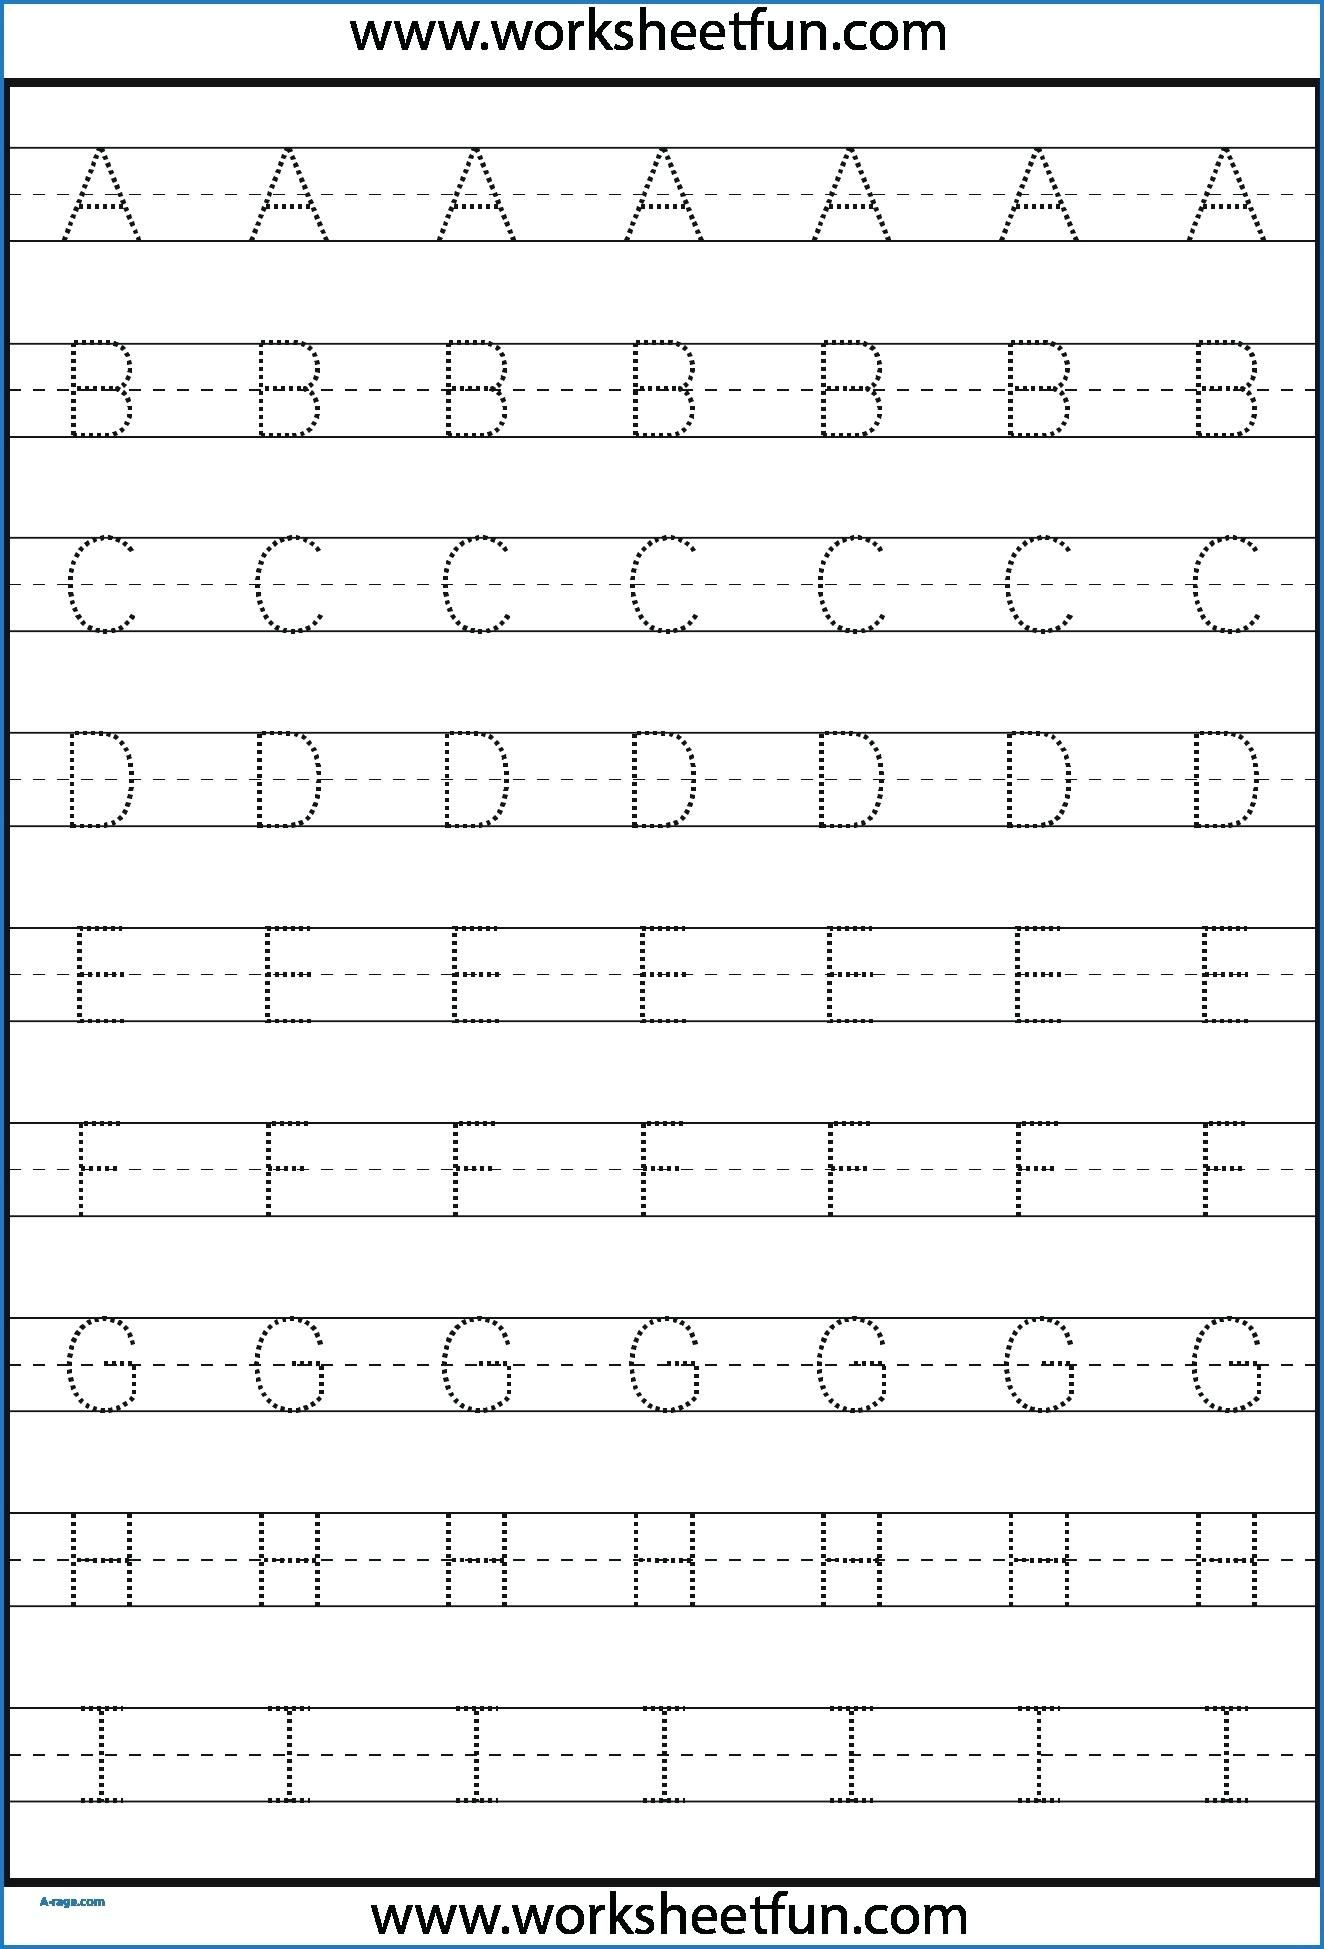 Kindergarten Letter Tracing Worksheets Pdf - Wallpaper Image with regard to Letter Tracing Worksheets For Free